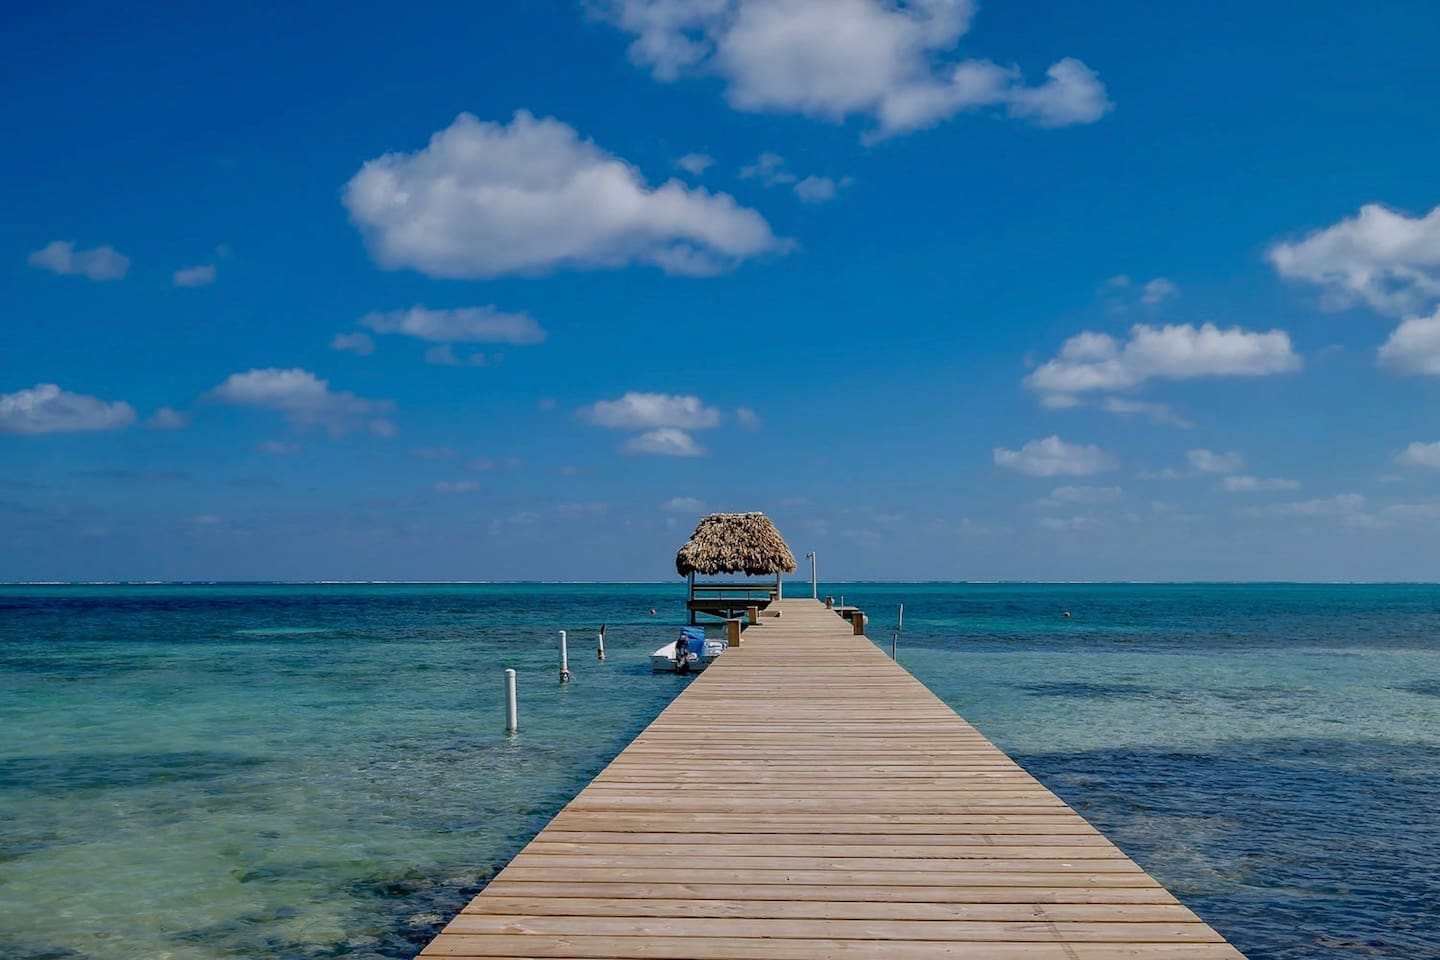 Resort dock; any tour operator will pick you up & drop you off here for excursions